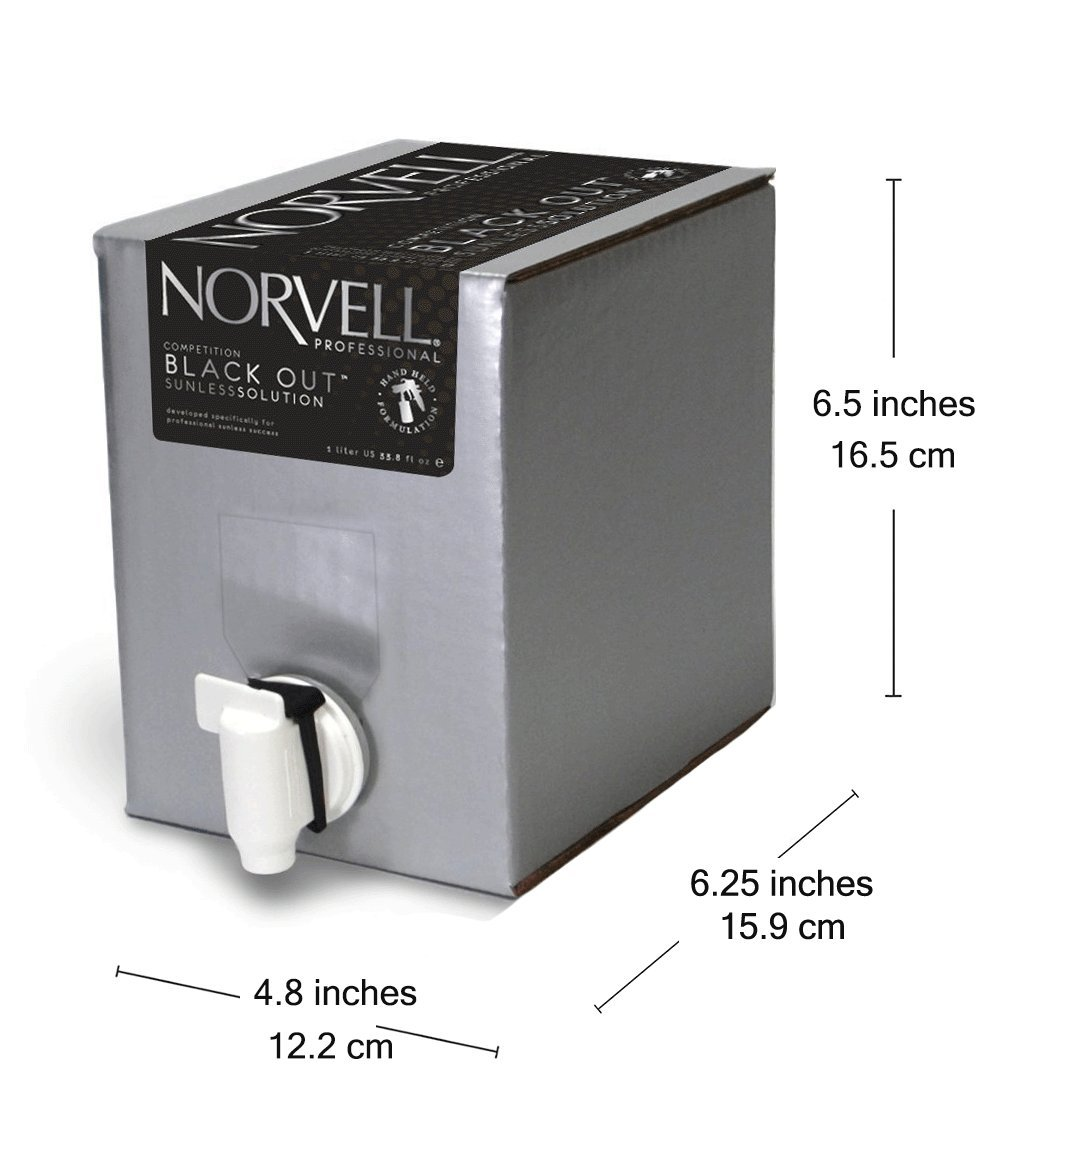 Norvell Premium Sunless Tanning Solution - Competition Black Out, 1 Liter Box by Norvell (Image #6)